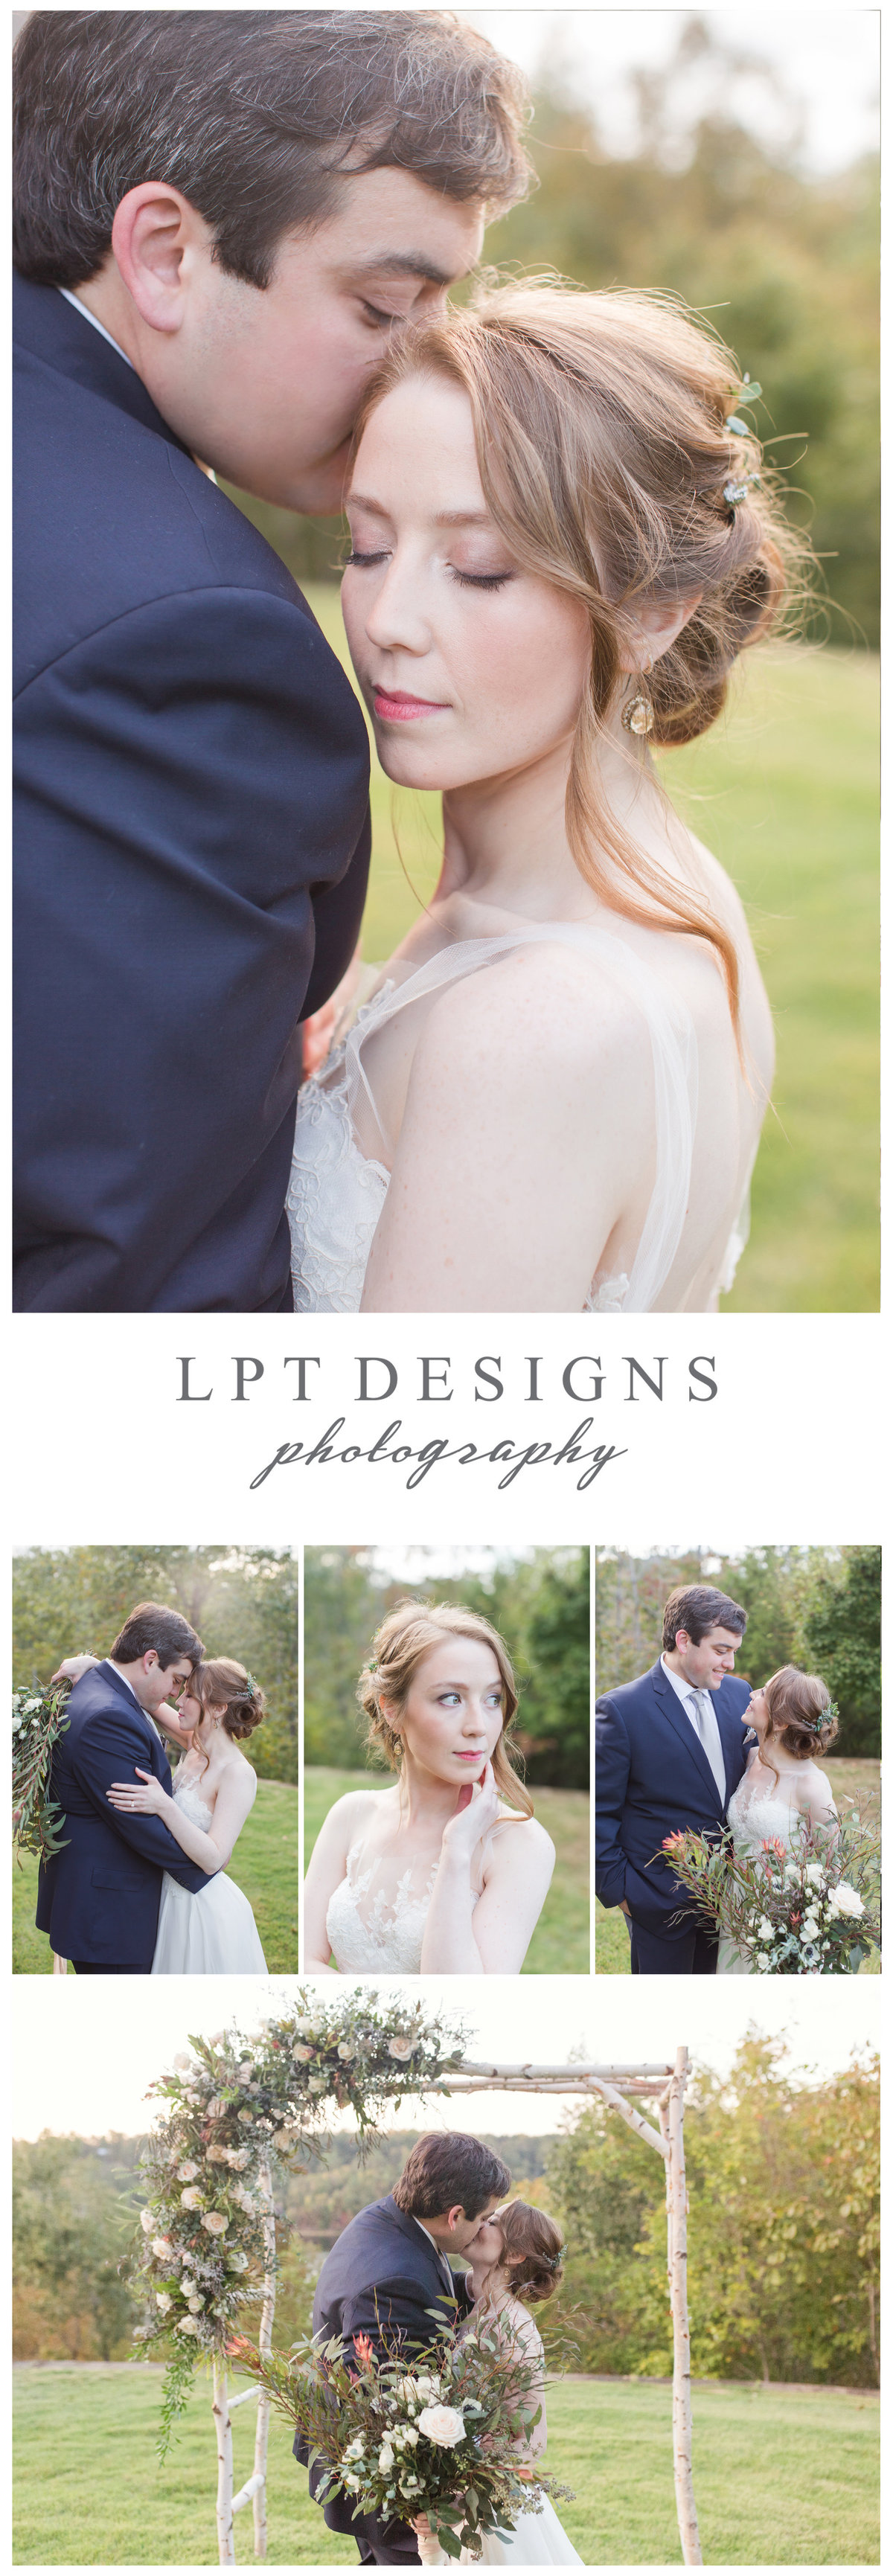 lpt_designs_photography_lydia_thrift_gadsden_alabama_fine_art_wedding_photographer_jw_1